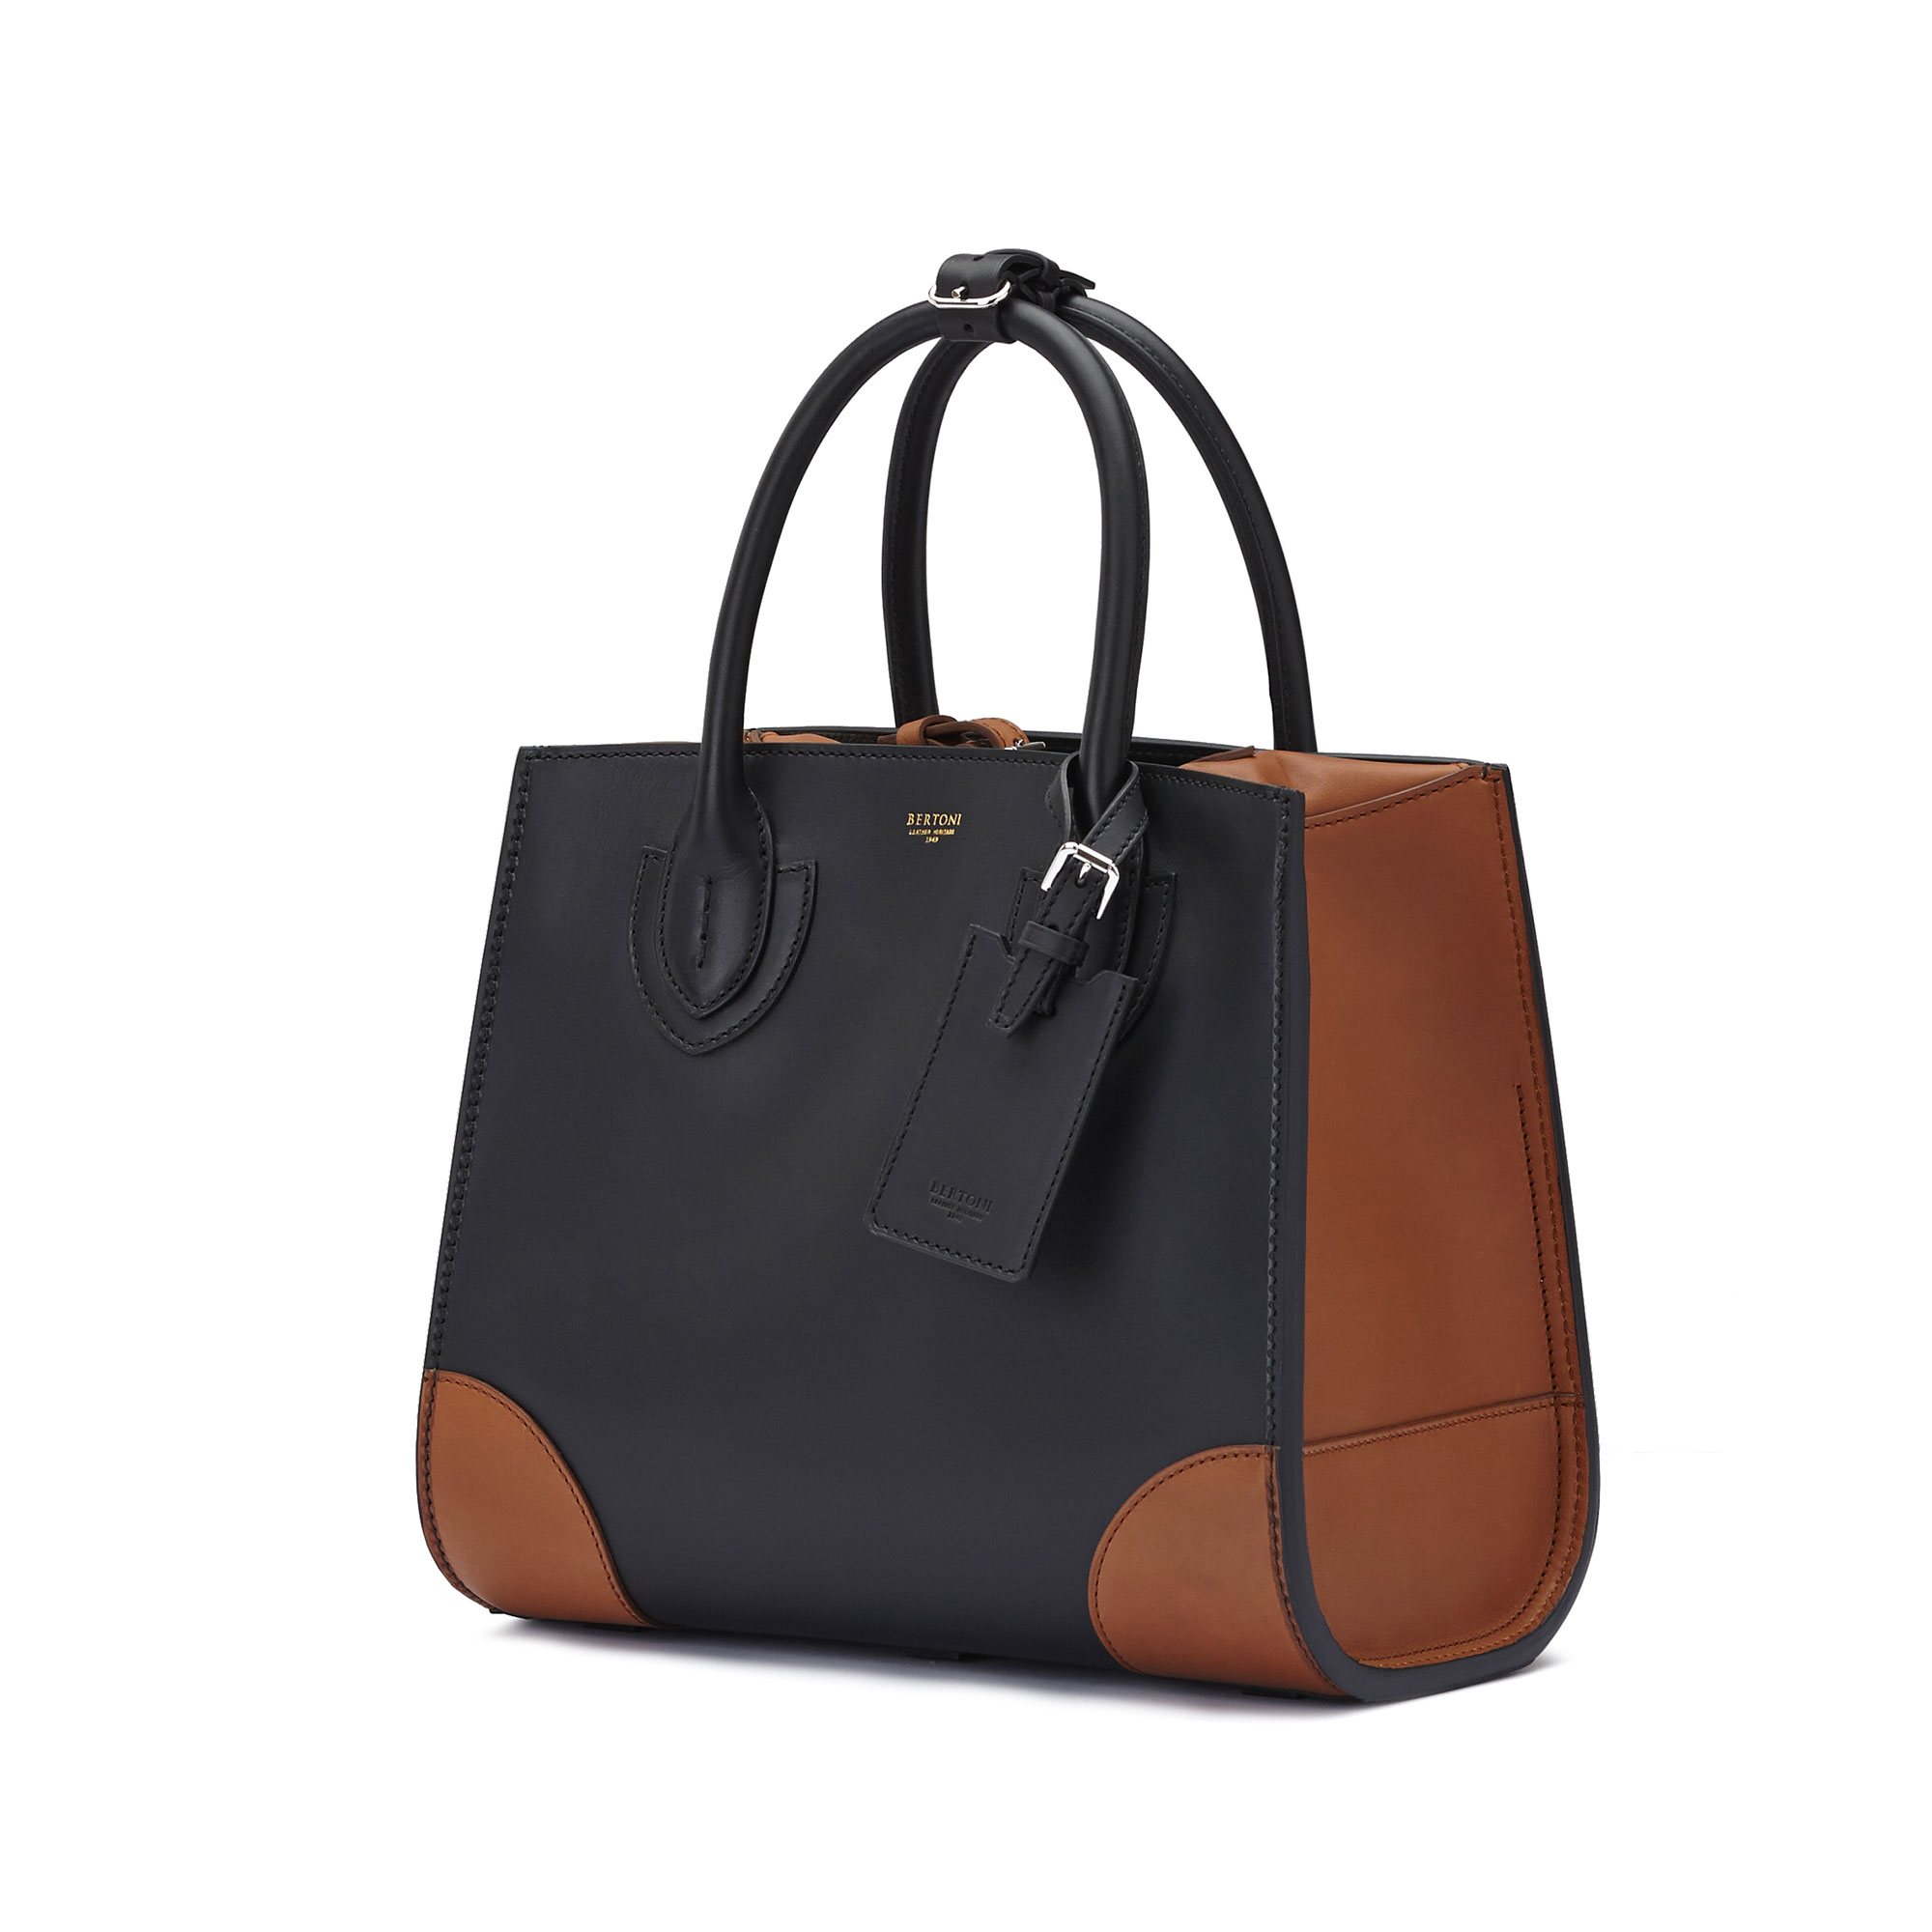 The black and terrabruciata french calf Darcy medium bag by Bertoni 1949 03